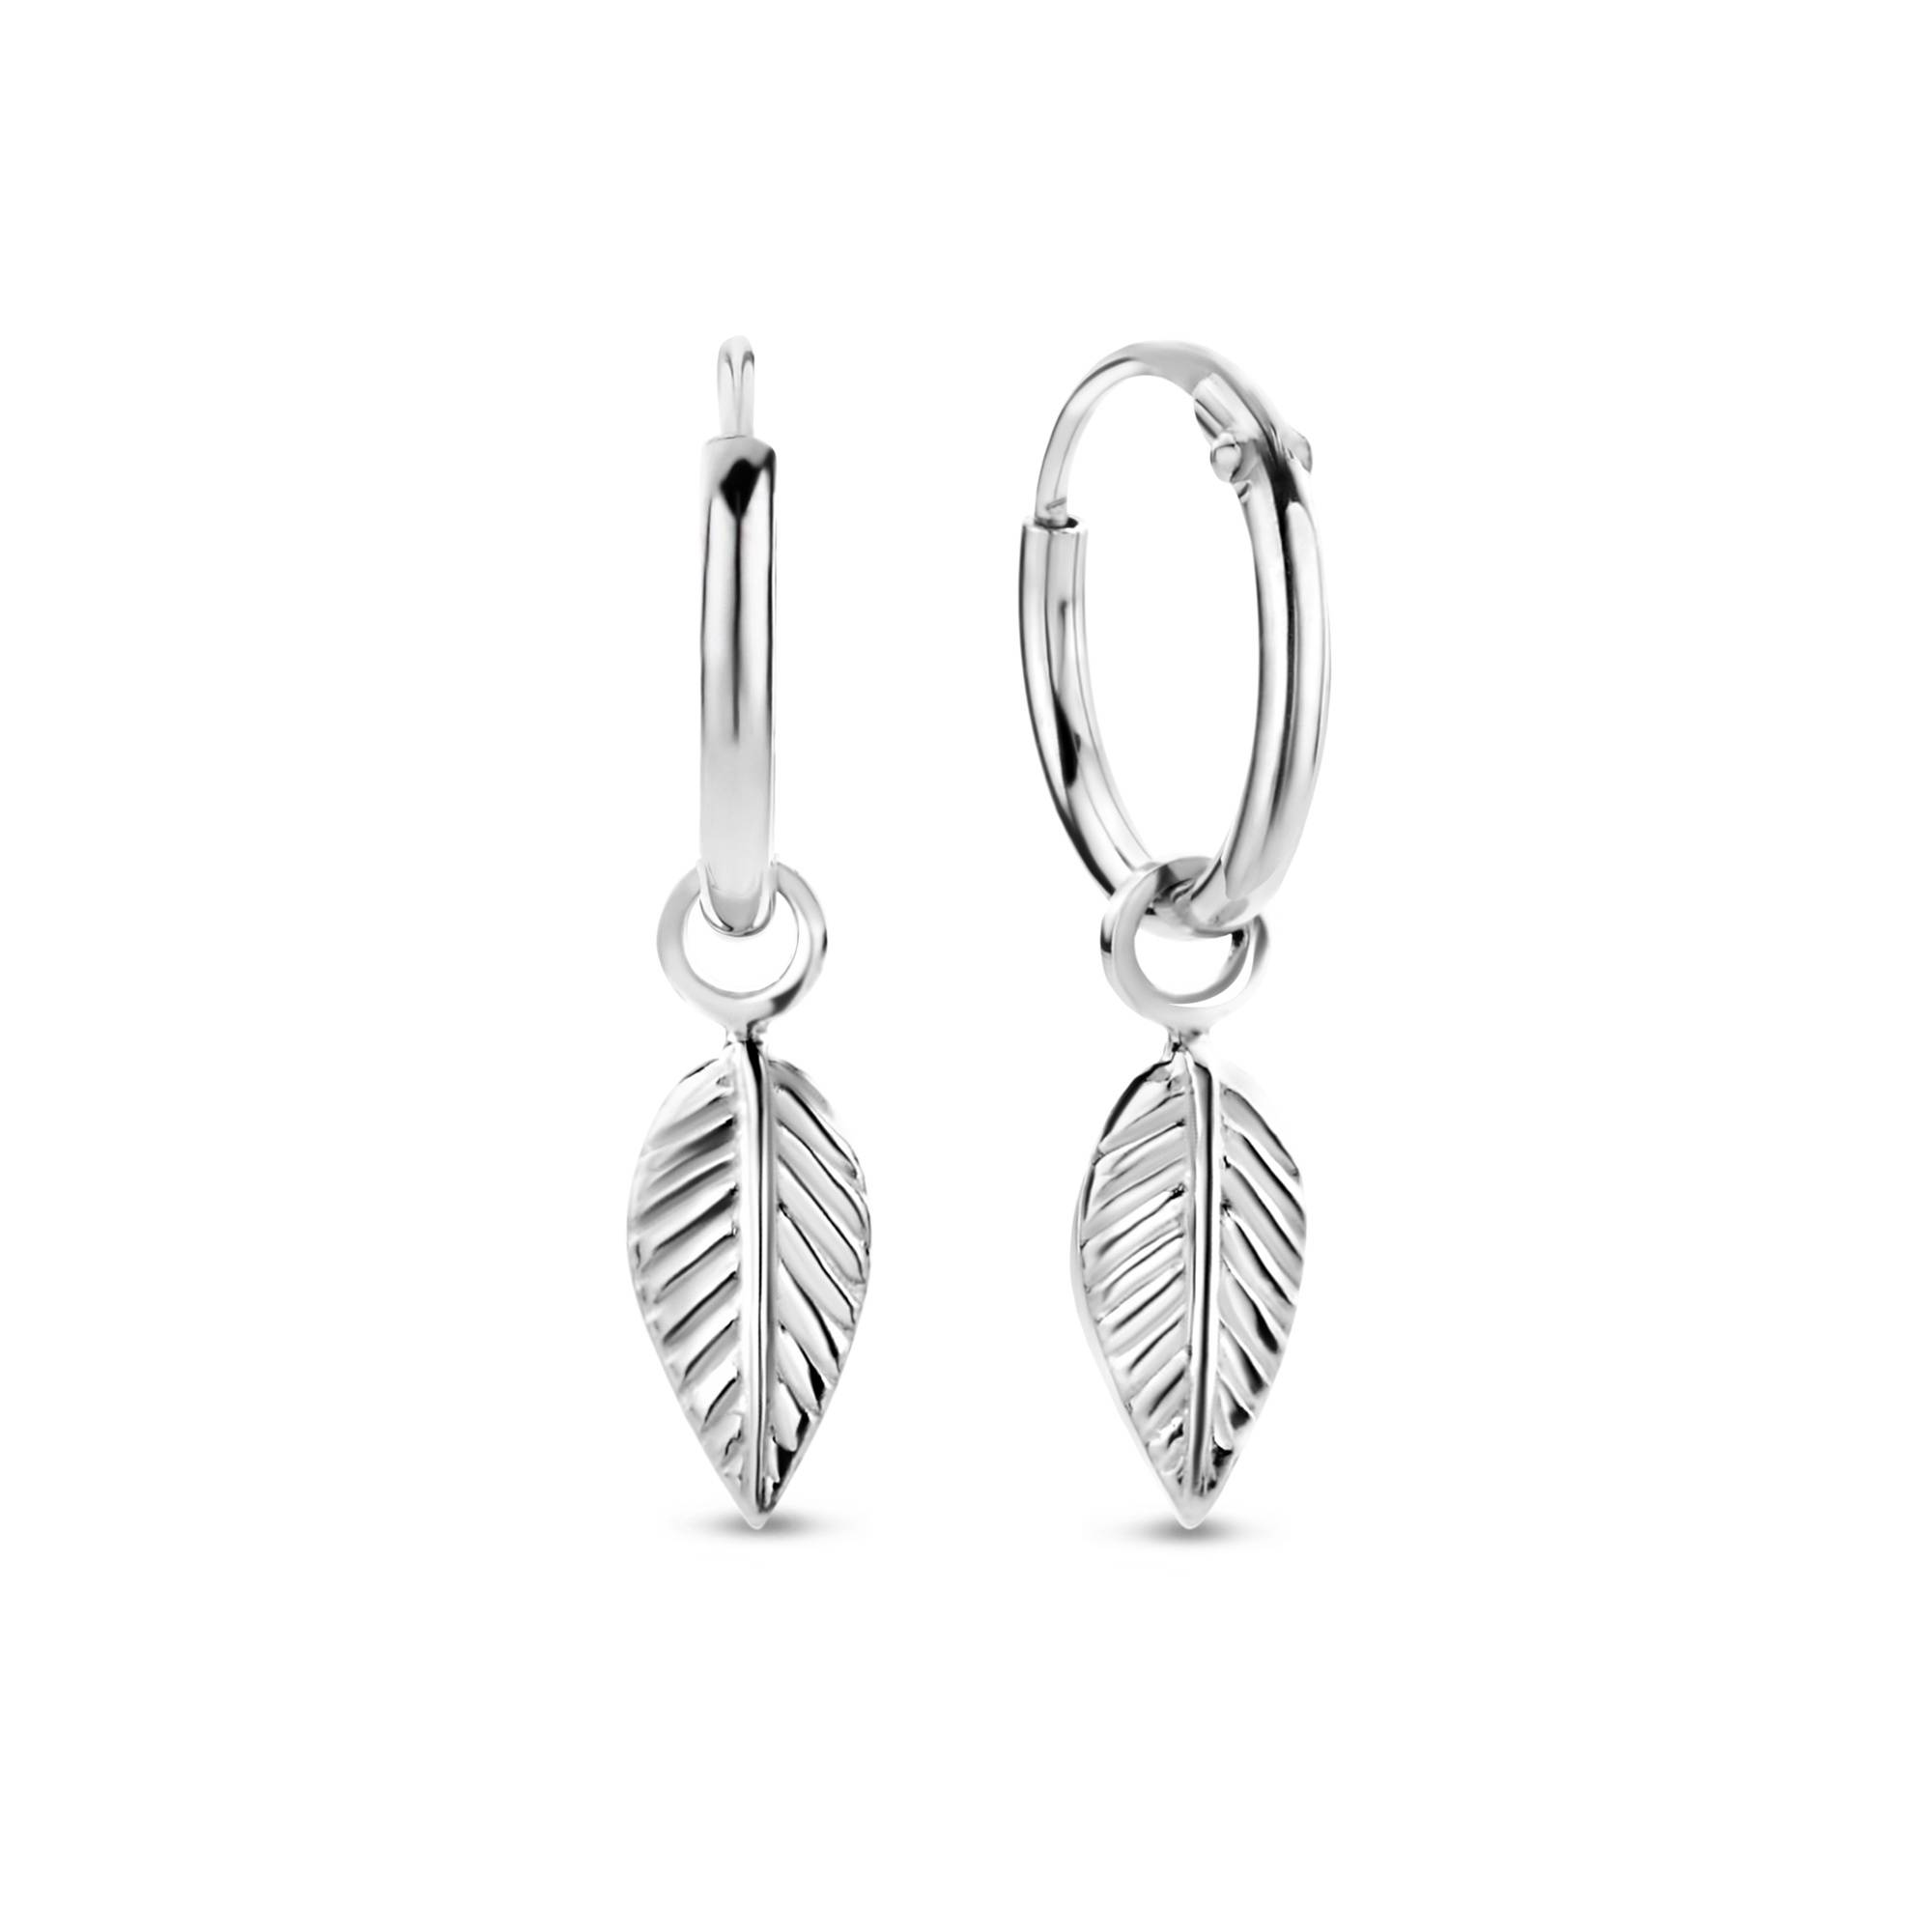 Julie Lucie 925 sterling silver earrings feather